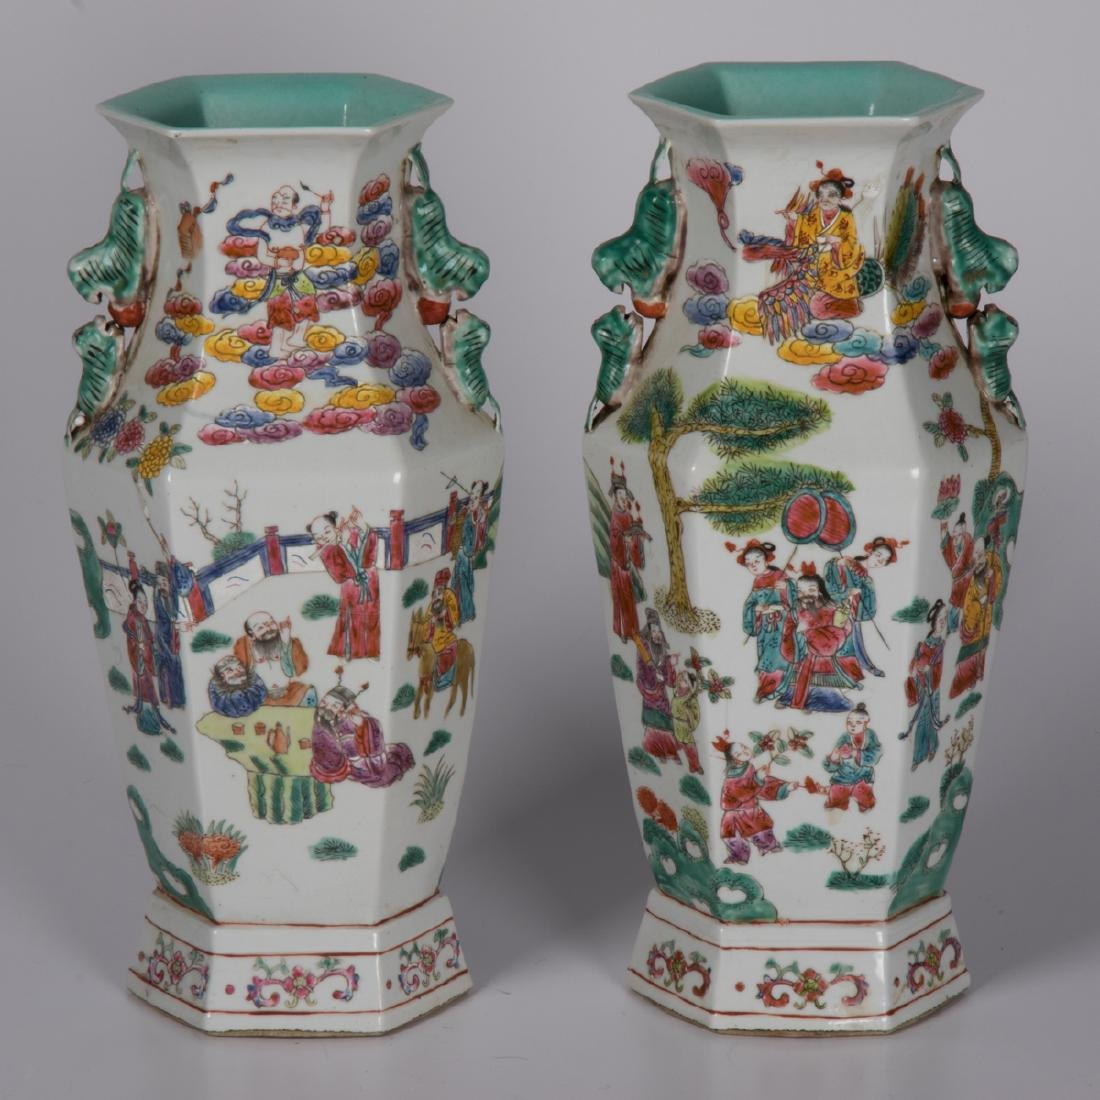 A Pair of Chinese Porcelain Vases, 19th/20th Century,